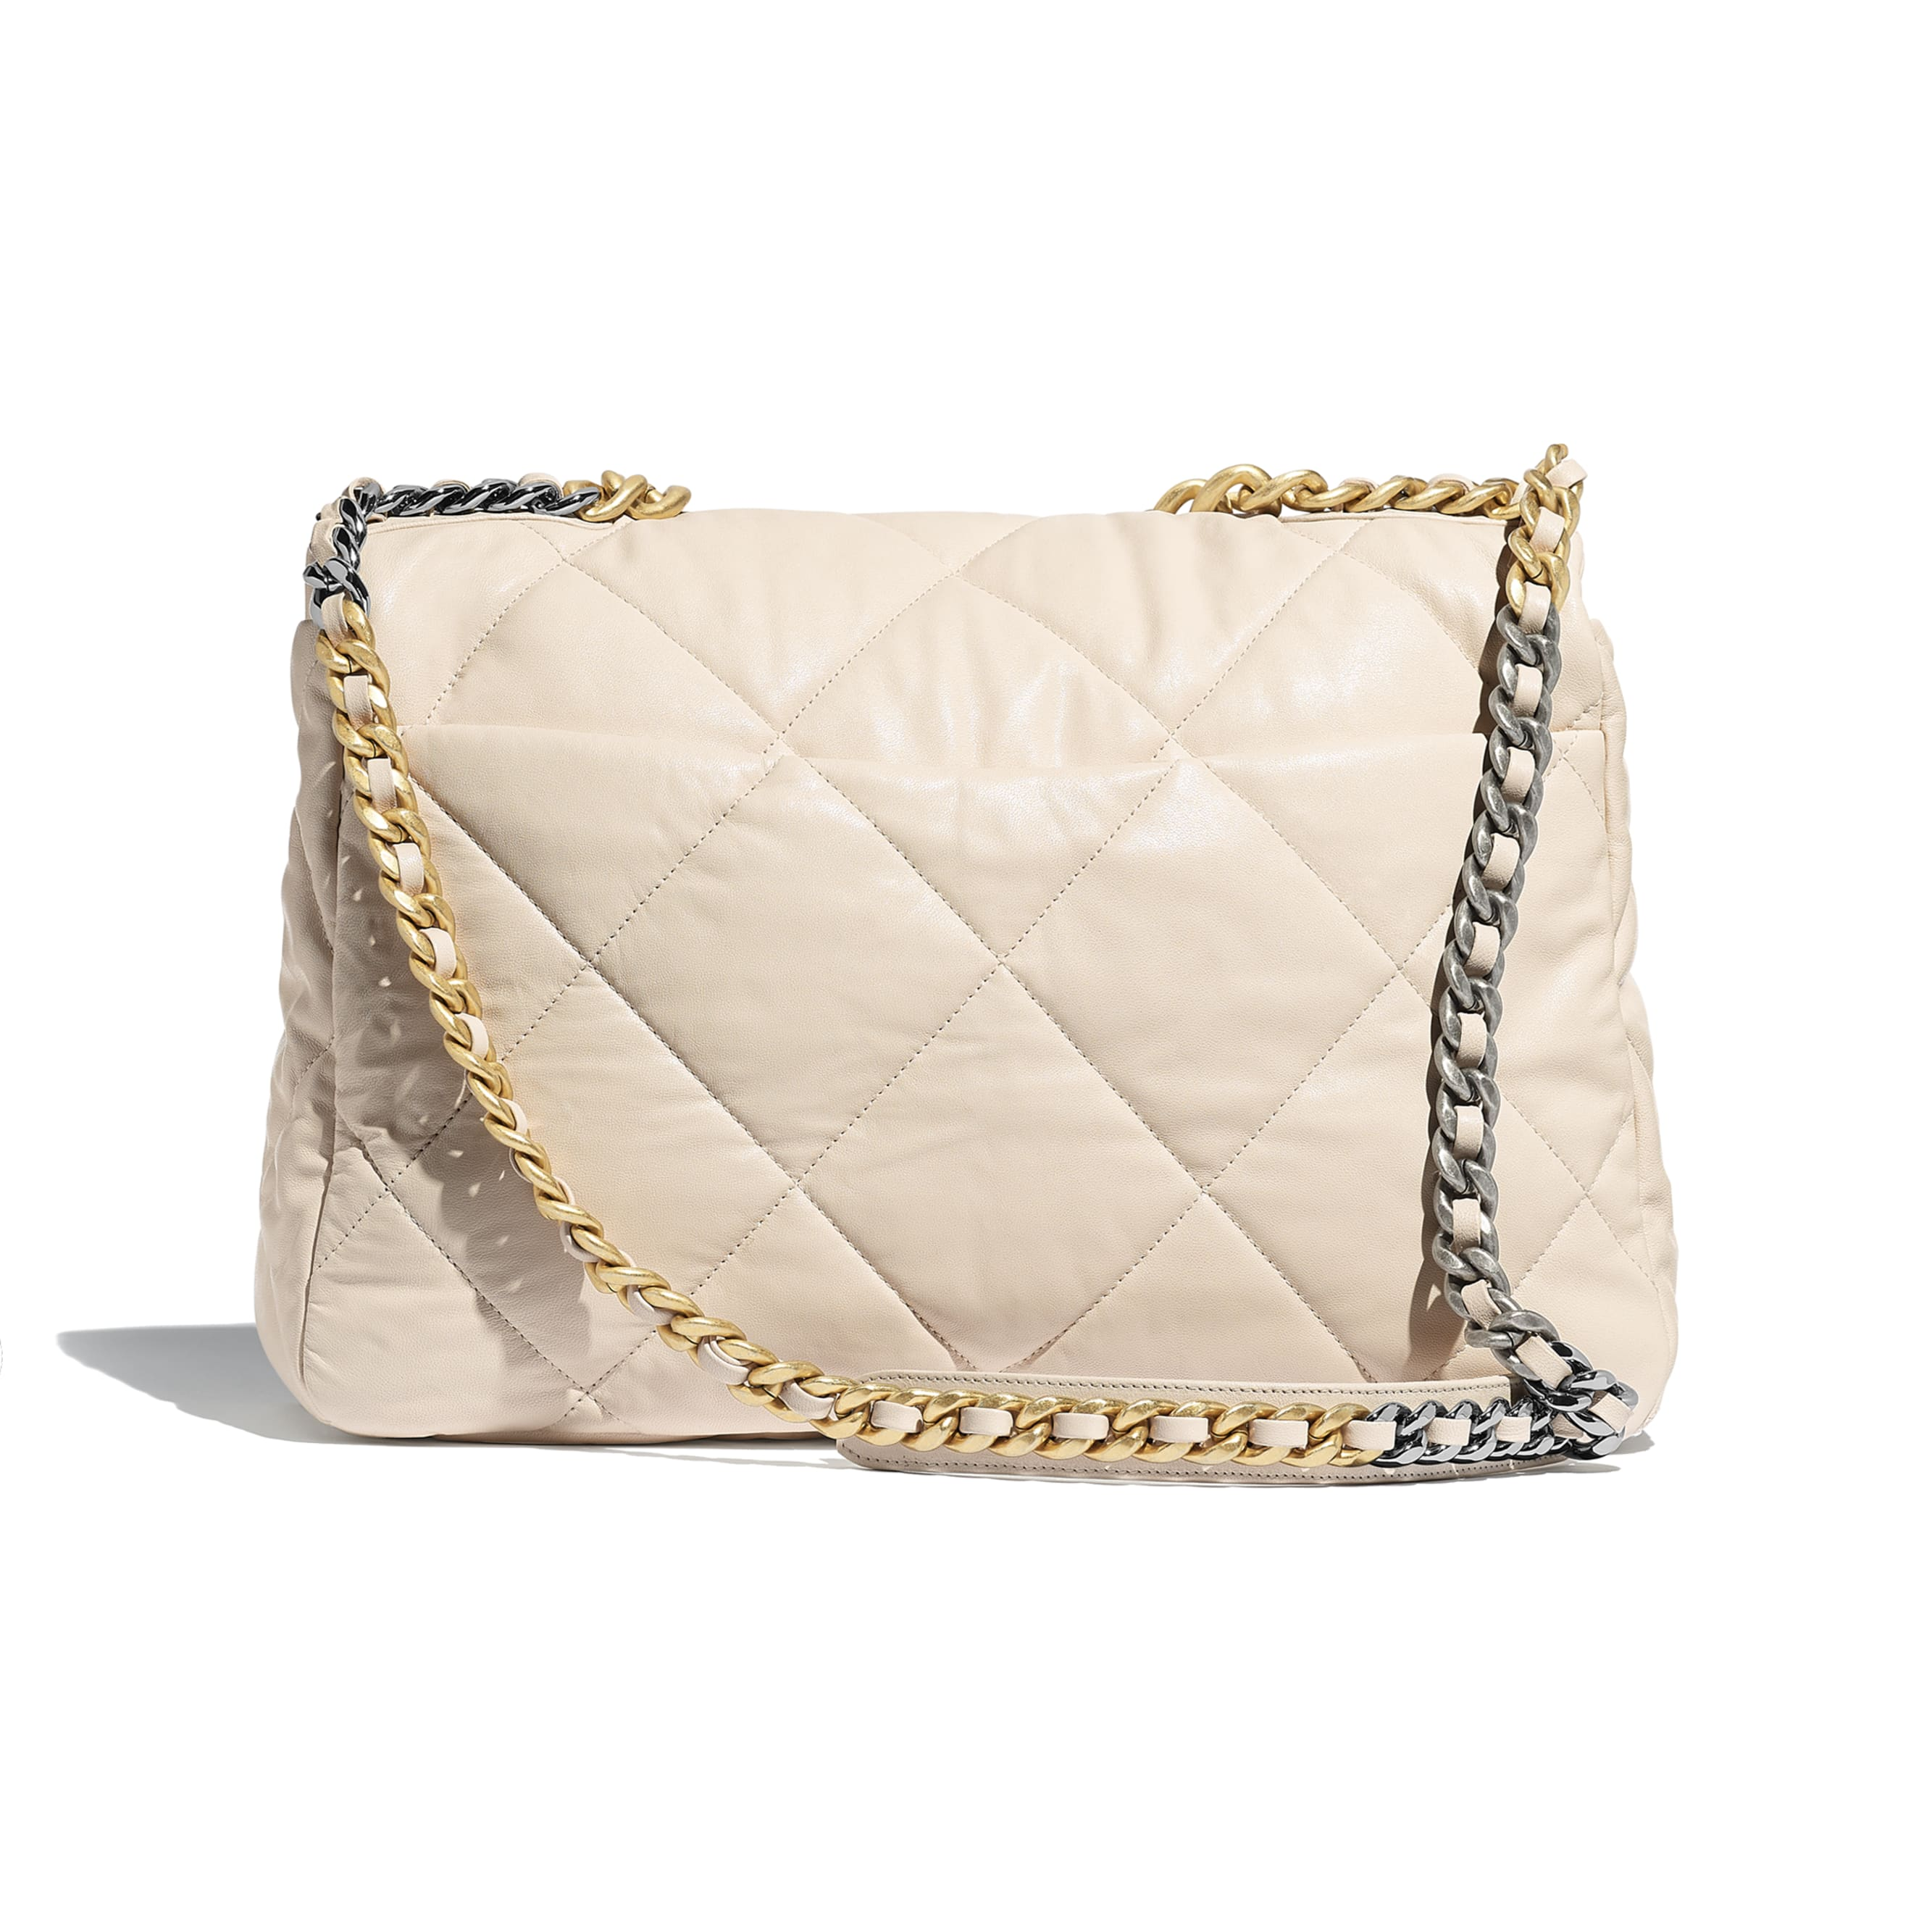 CHANEL 19 Maxi Flap Bag - Light Beige - Lambskin, Gold-Tone, Silver-Tone & Ruthenium-Finish Metal - Alternative view - see standard sized version